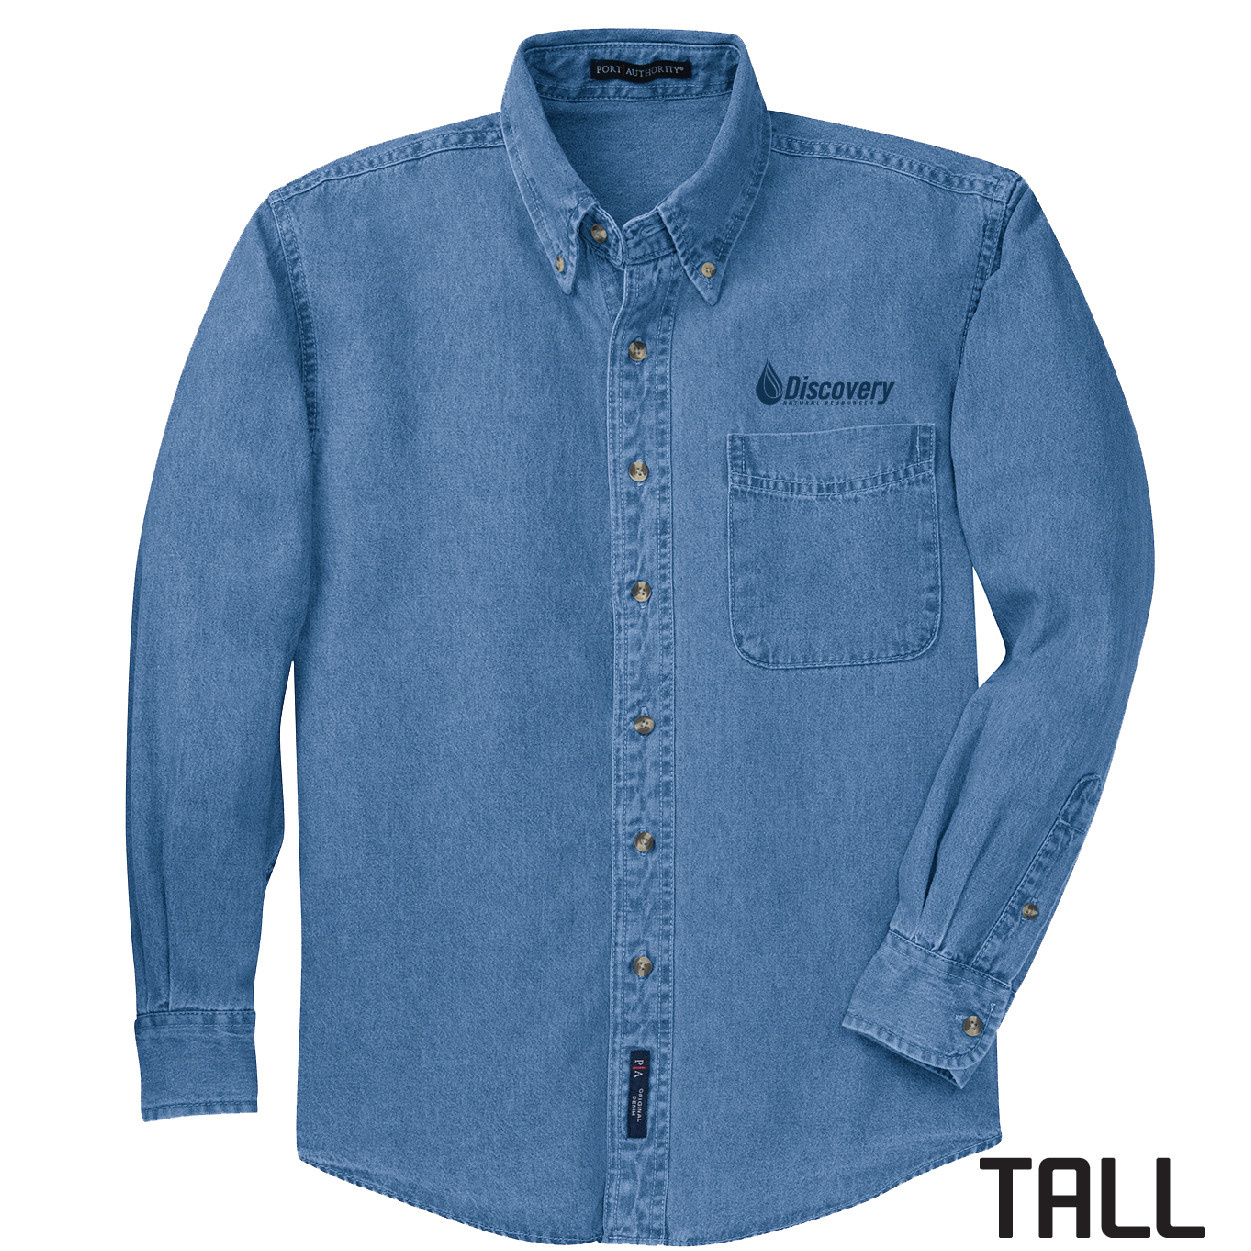 Port Authority Port Authority TALL Long Sleeve Denim Shirt (Faded Blue)